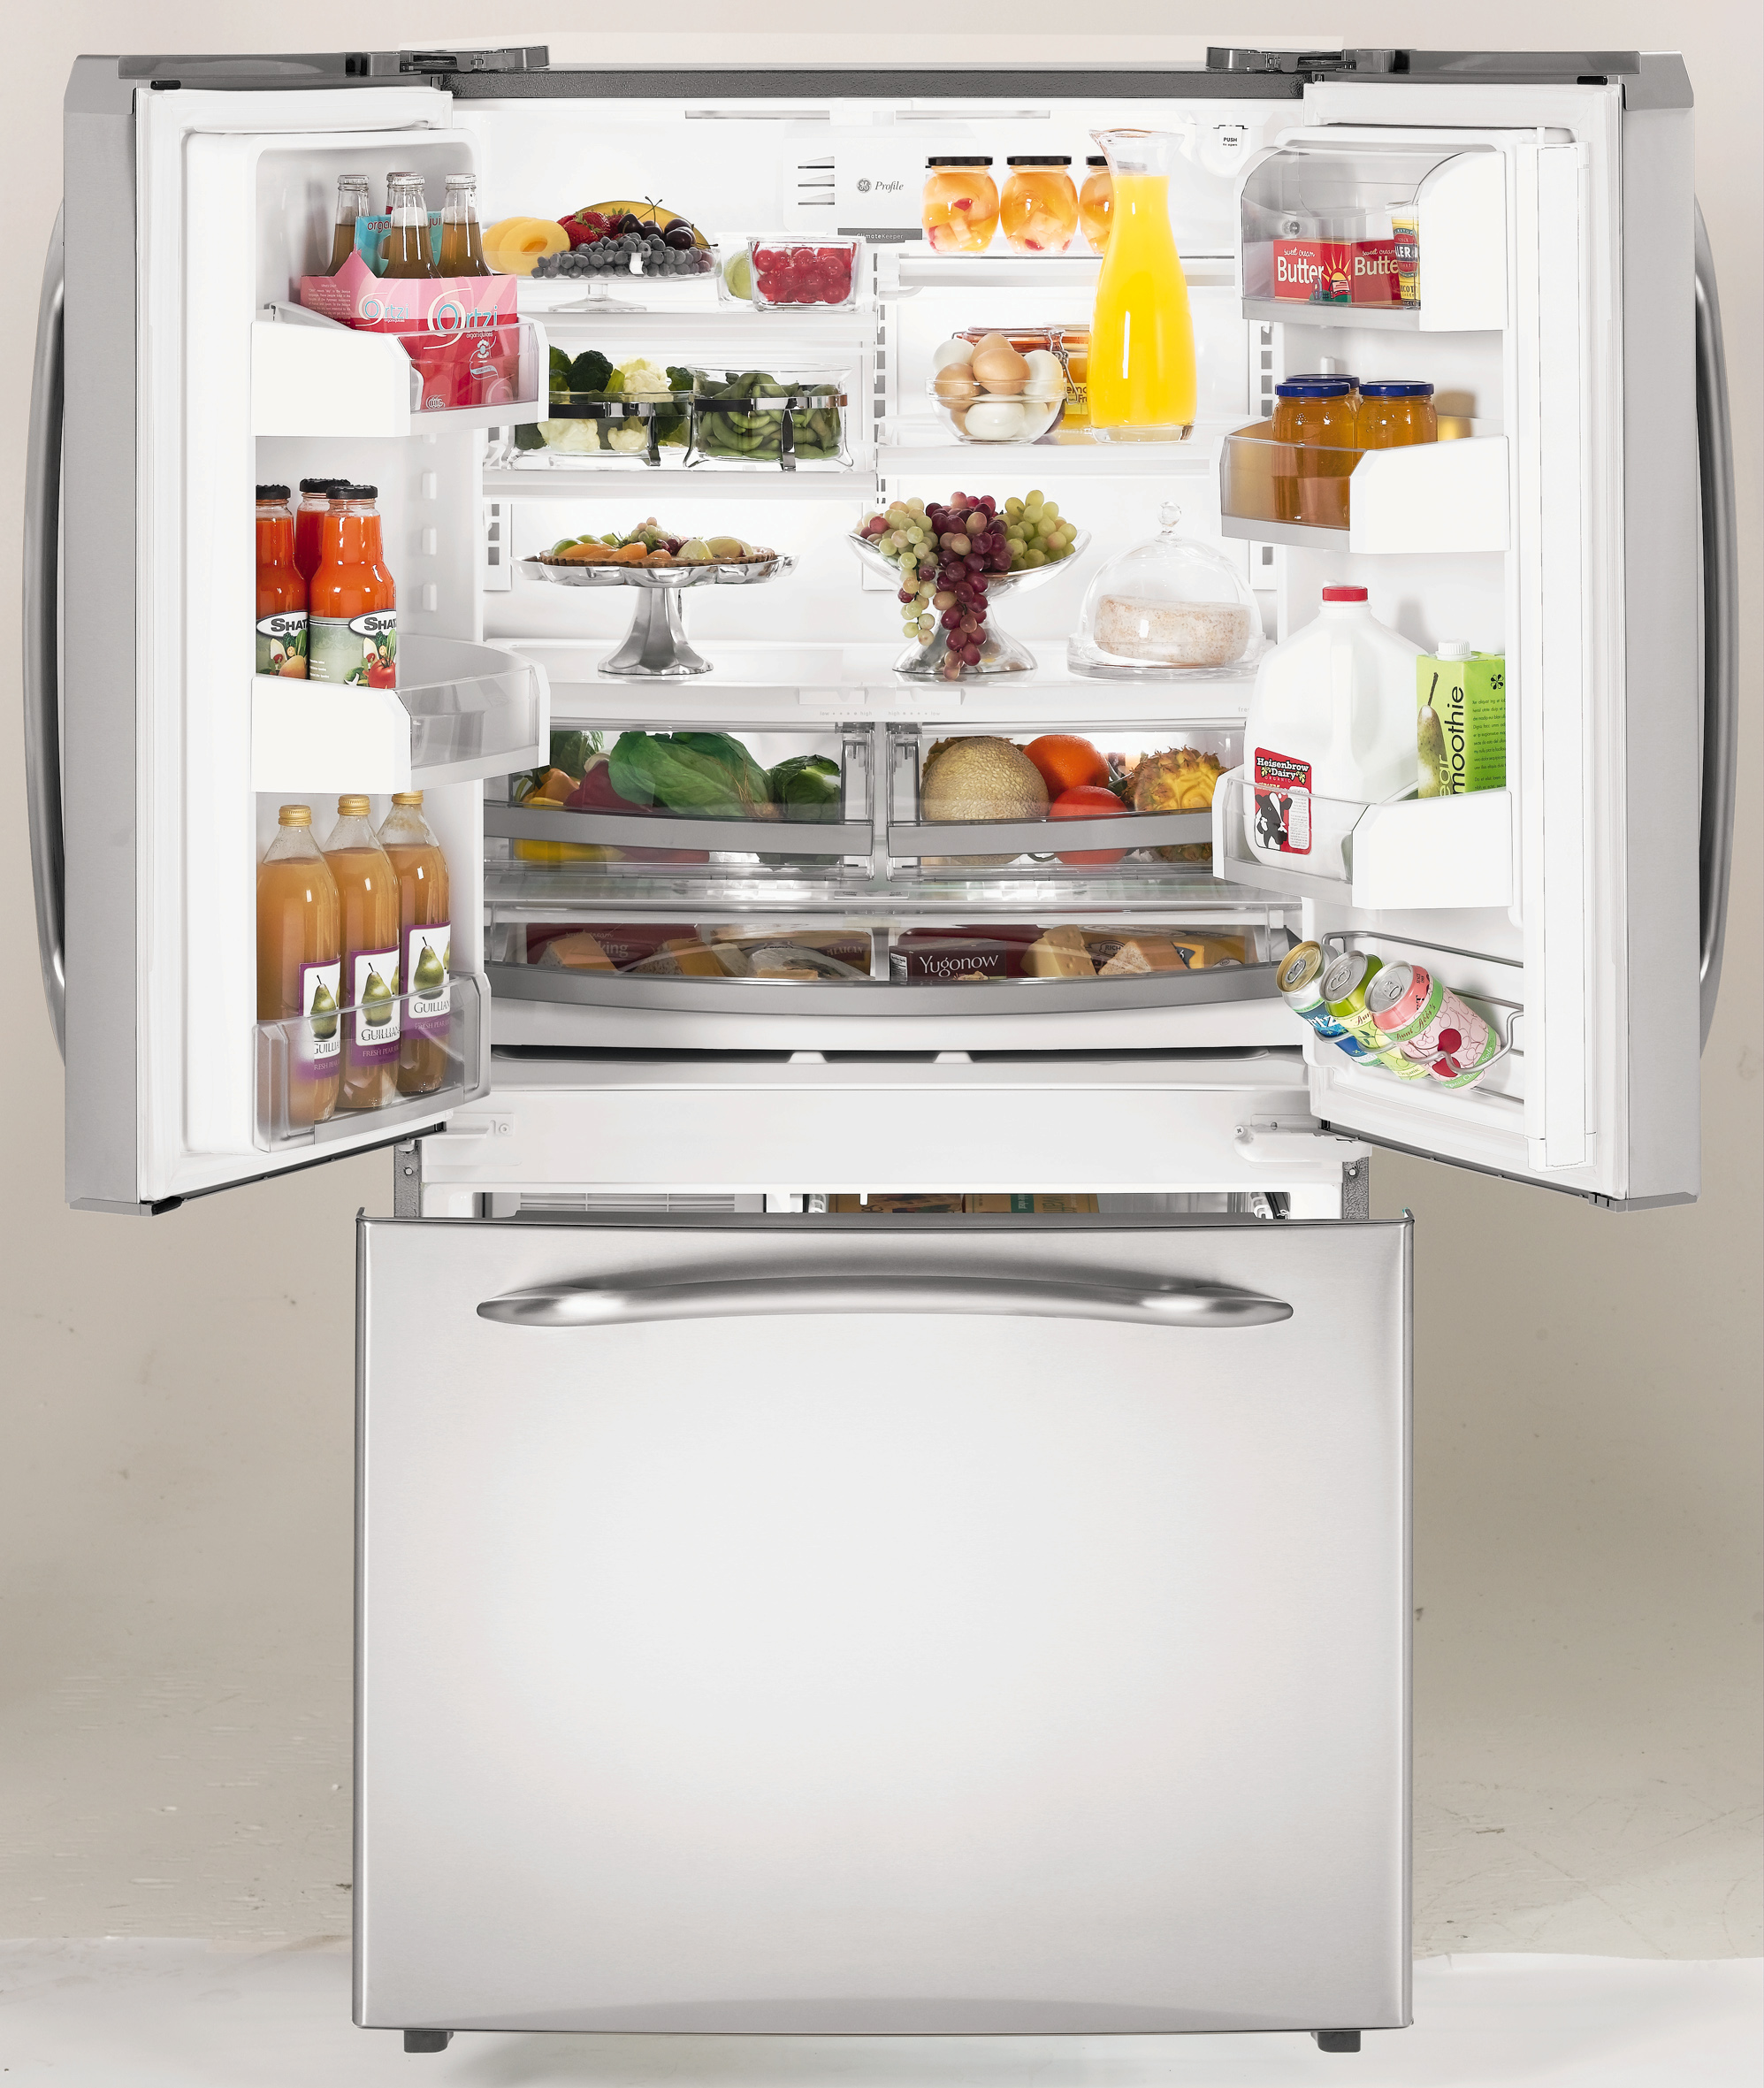 Refrigerated Ge Refrigerator Troubleshooting